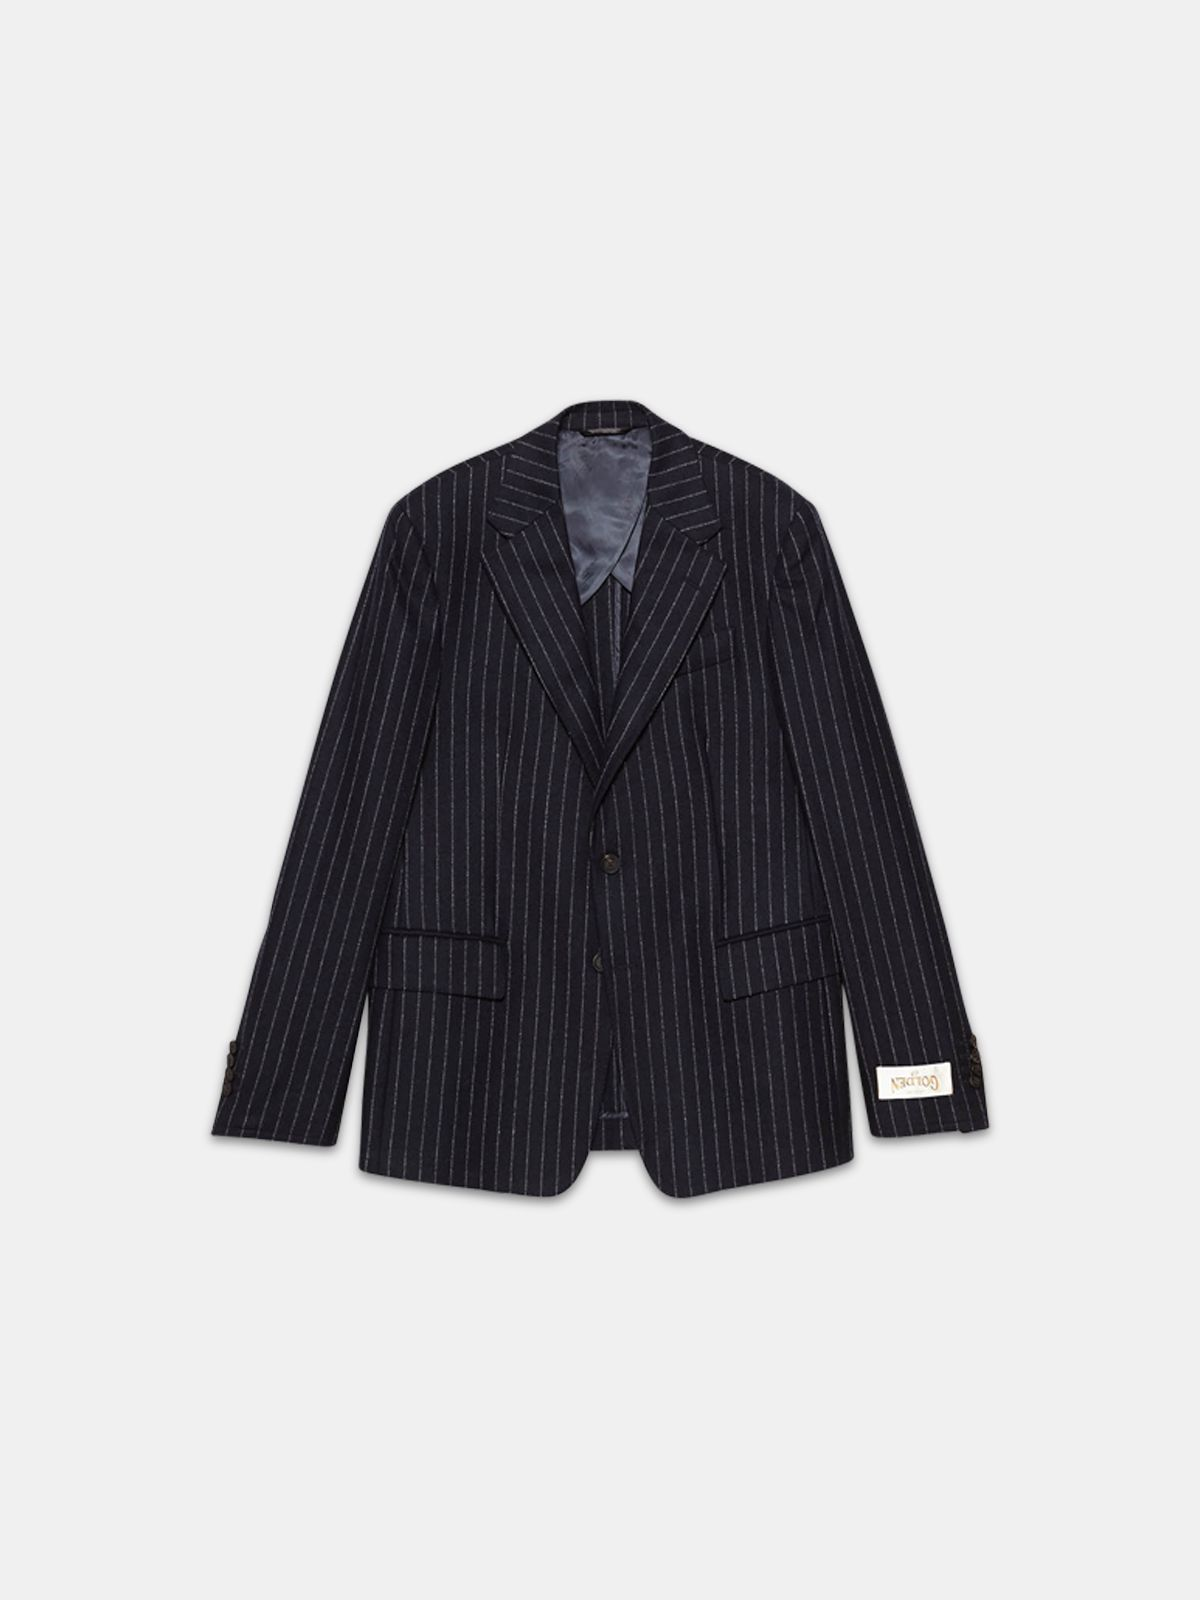 Golden Goose - Venice single-breasted jacket with pin striped pattern in